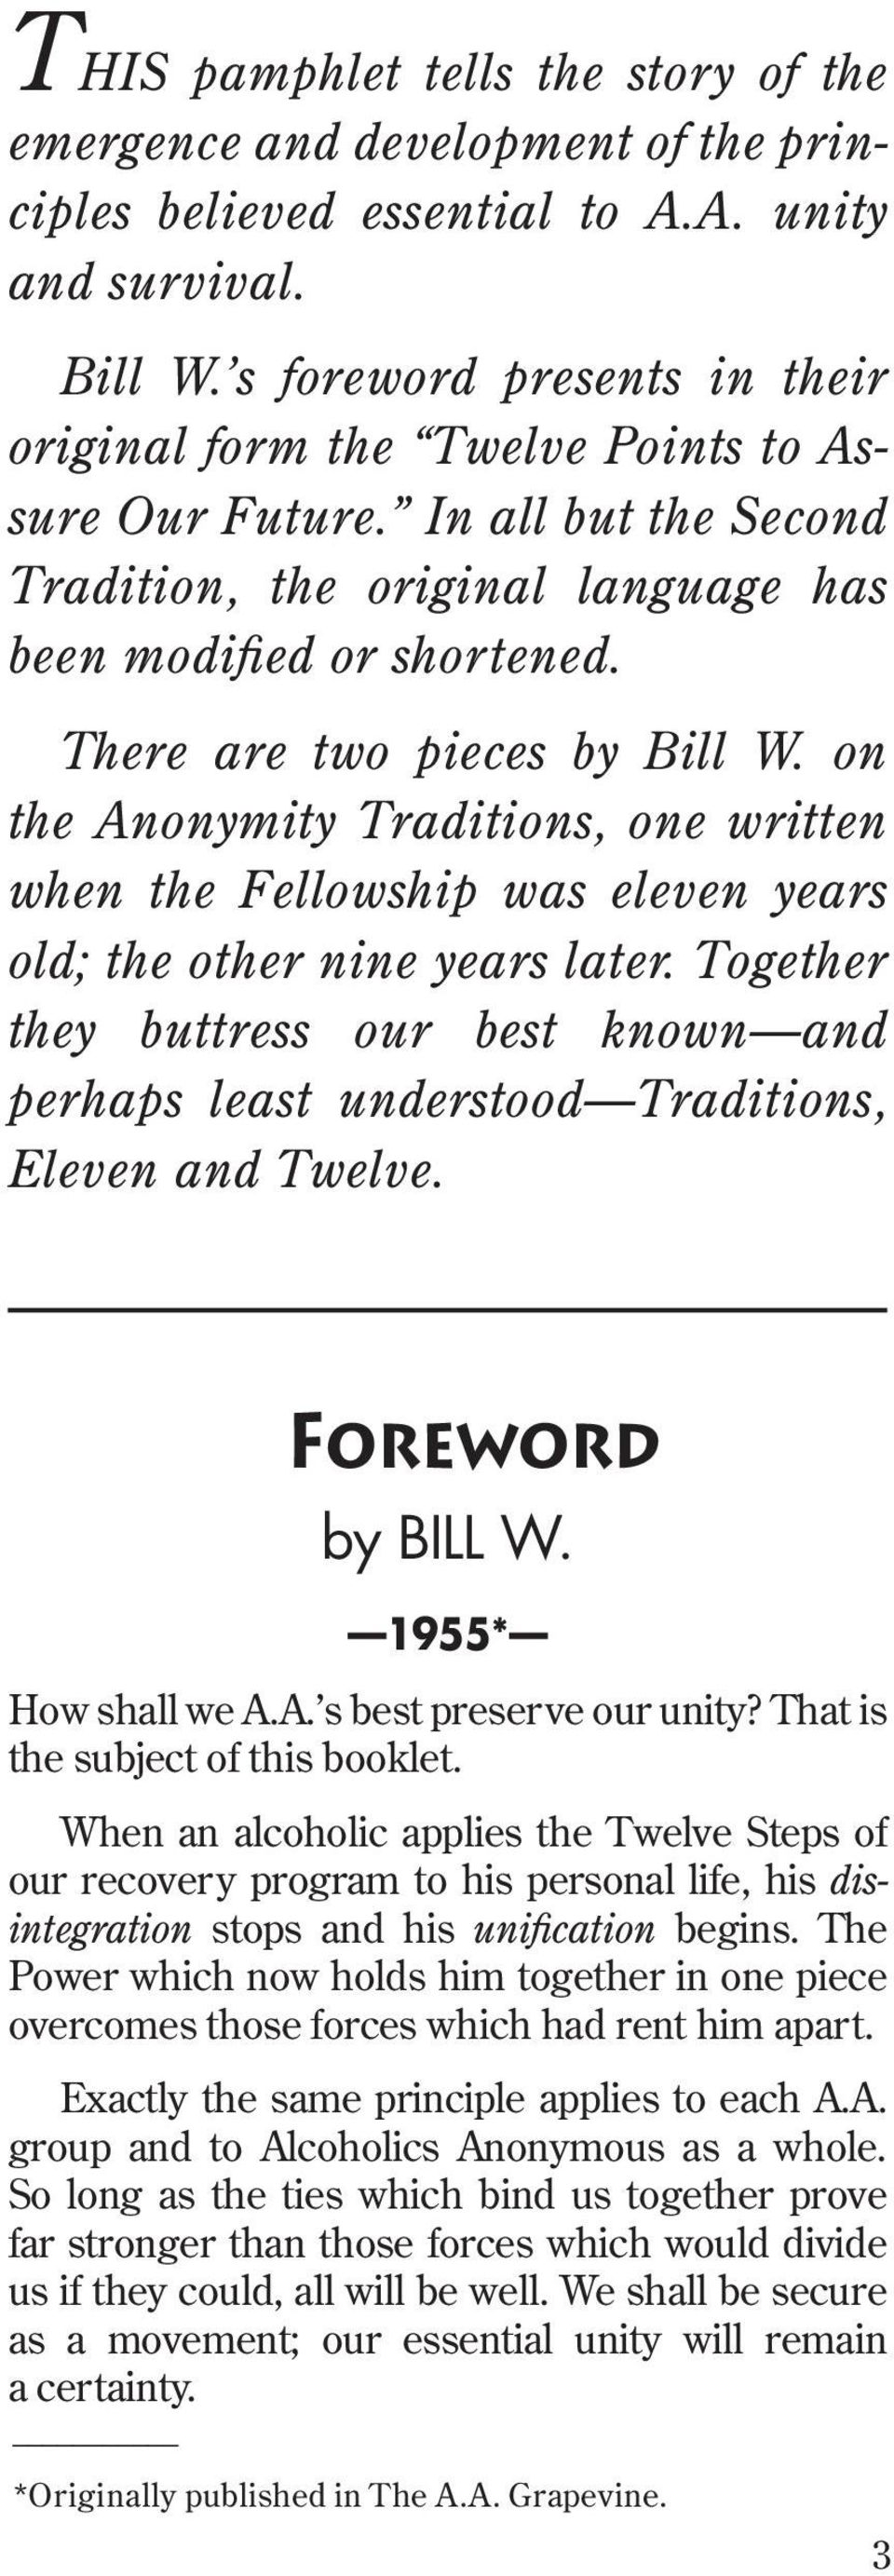 There are two pieces by Bill W. on the Anonymity Traditions, one written when the Fellowship was eleven years old; the other nine years later.